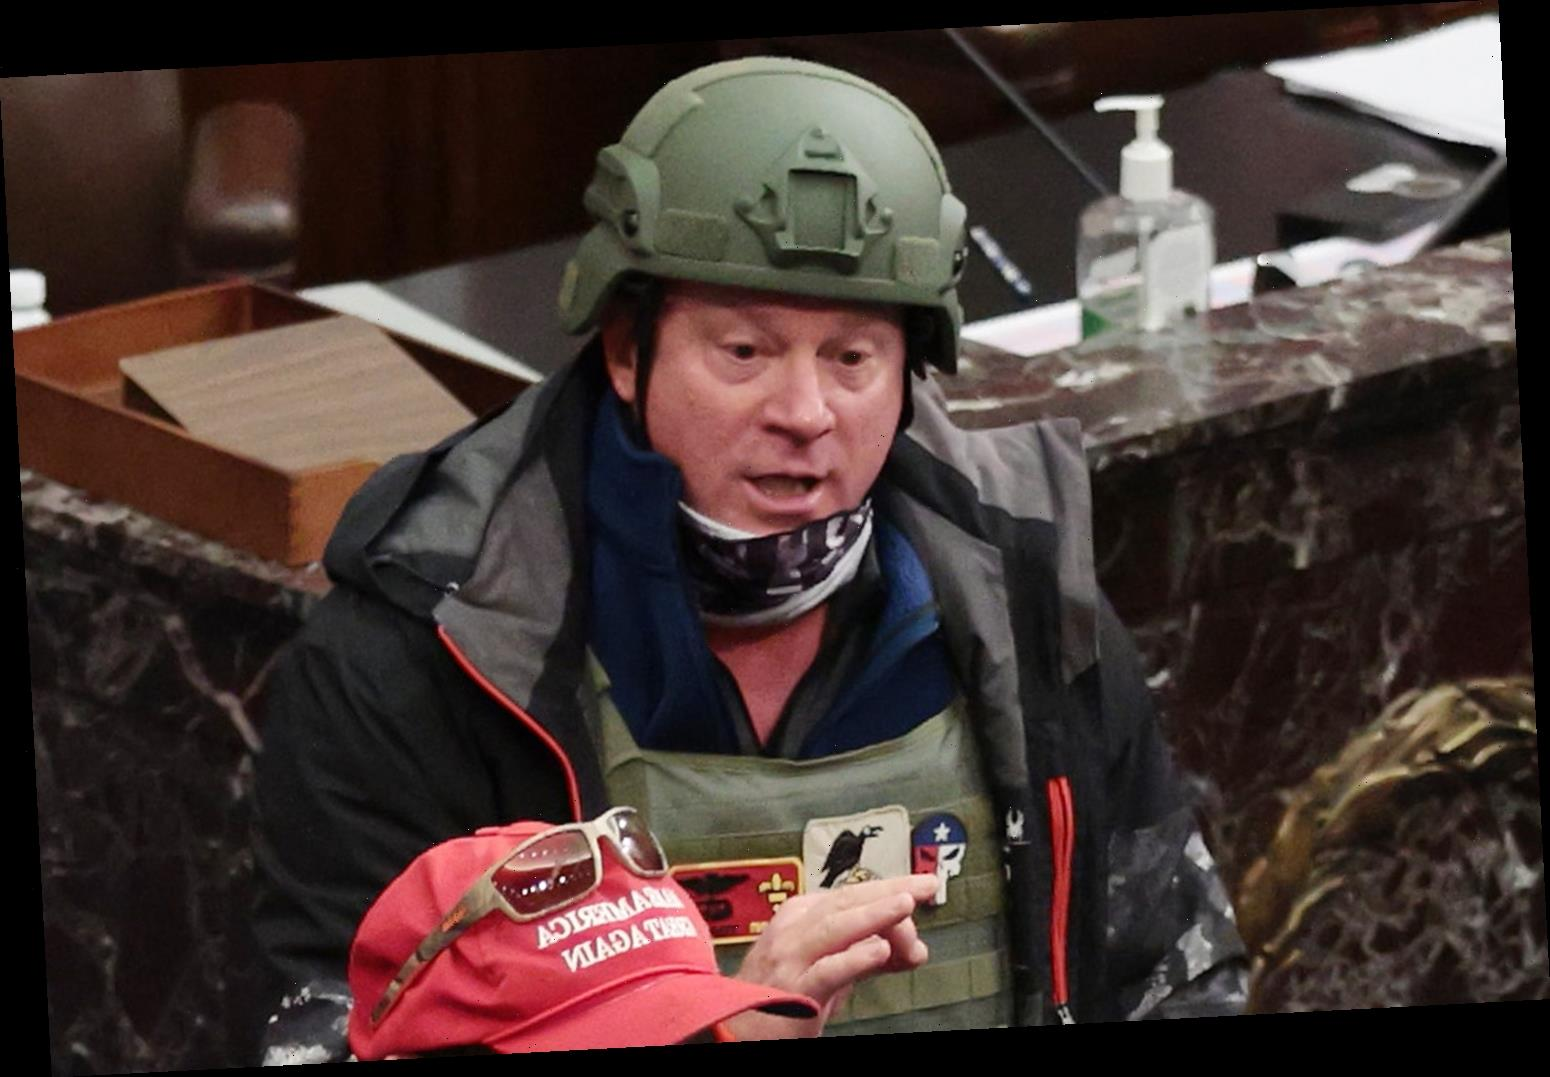 Capitol Rioter Spotted in Chamber with Zip Ties Is Arrested After Ex-Wife Calls FBI